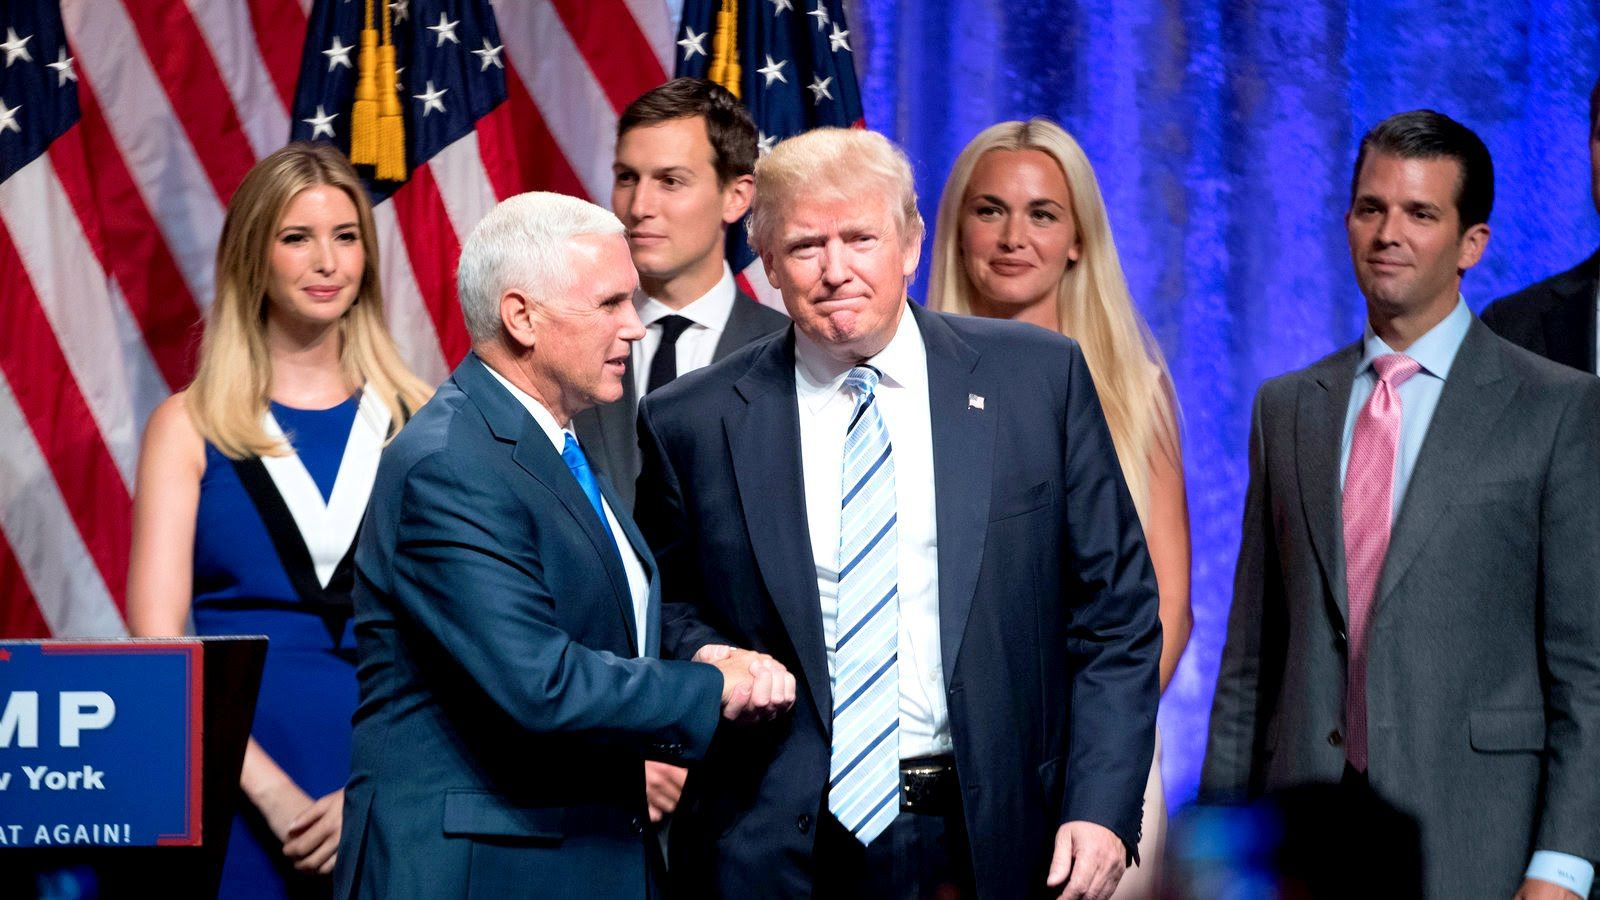 Donald Trump's Crucial Pillar of Support, White Men, Shows Weakness